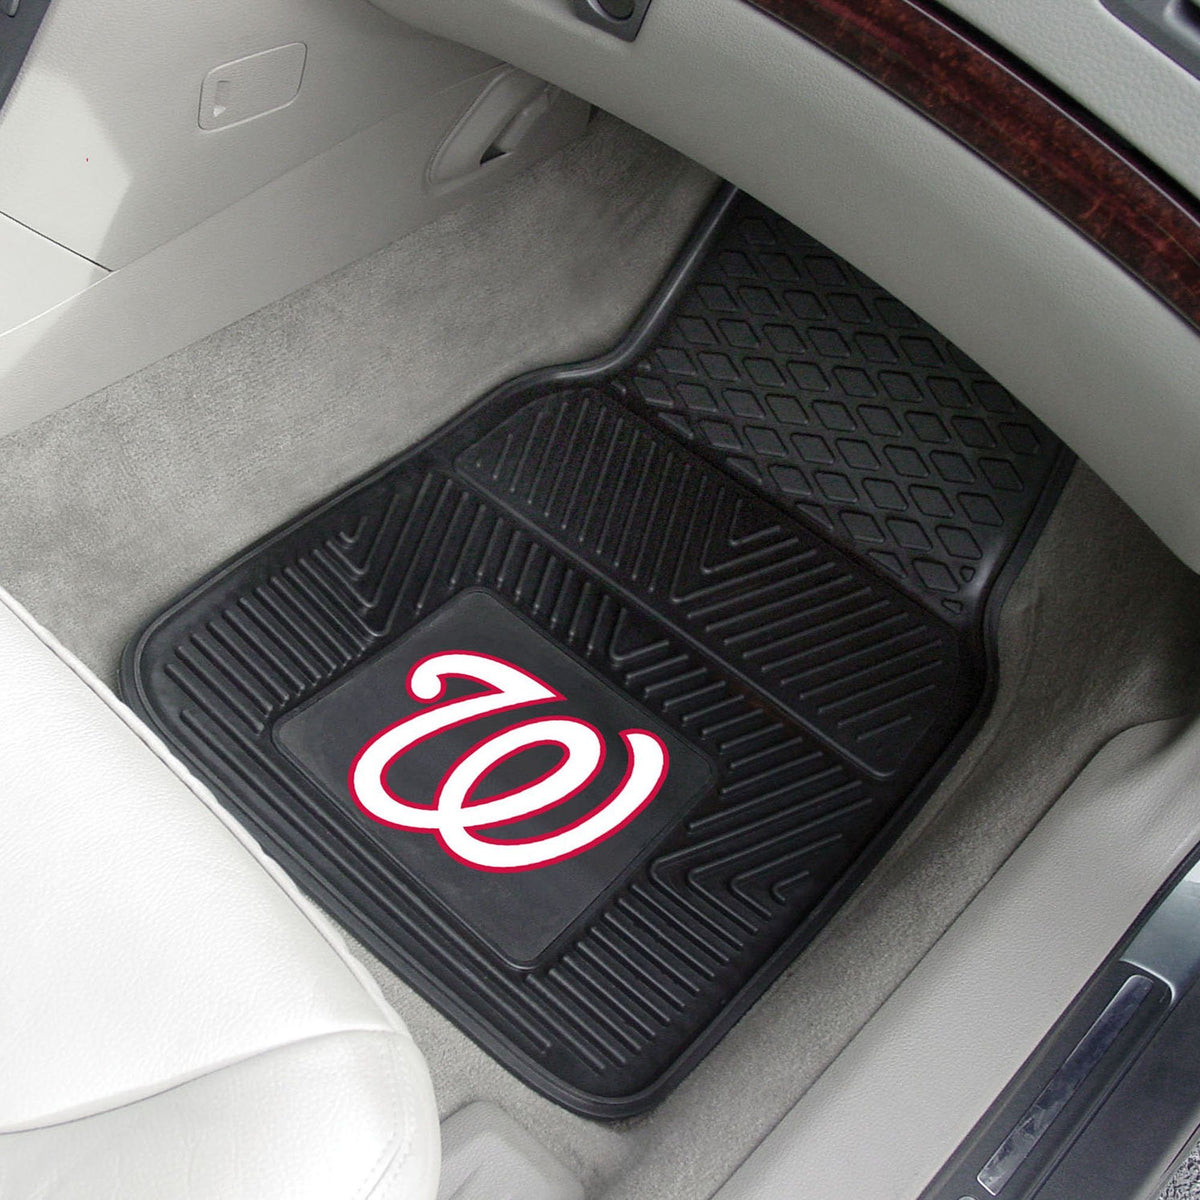 MLB - Vinyl Car Mat, 2-Piece Set MLB Mats, Front Car Mats, 2-pc Vinyl Car Mat Set, MLB, Auto Fan Mats Washington Nationals